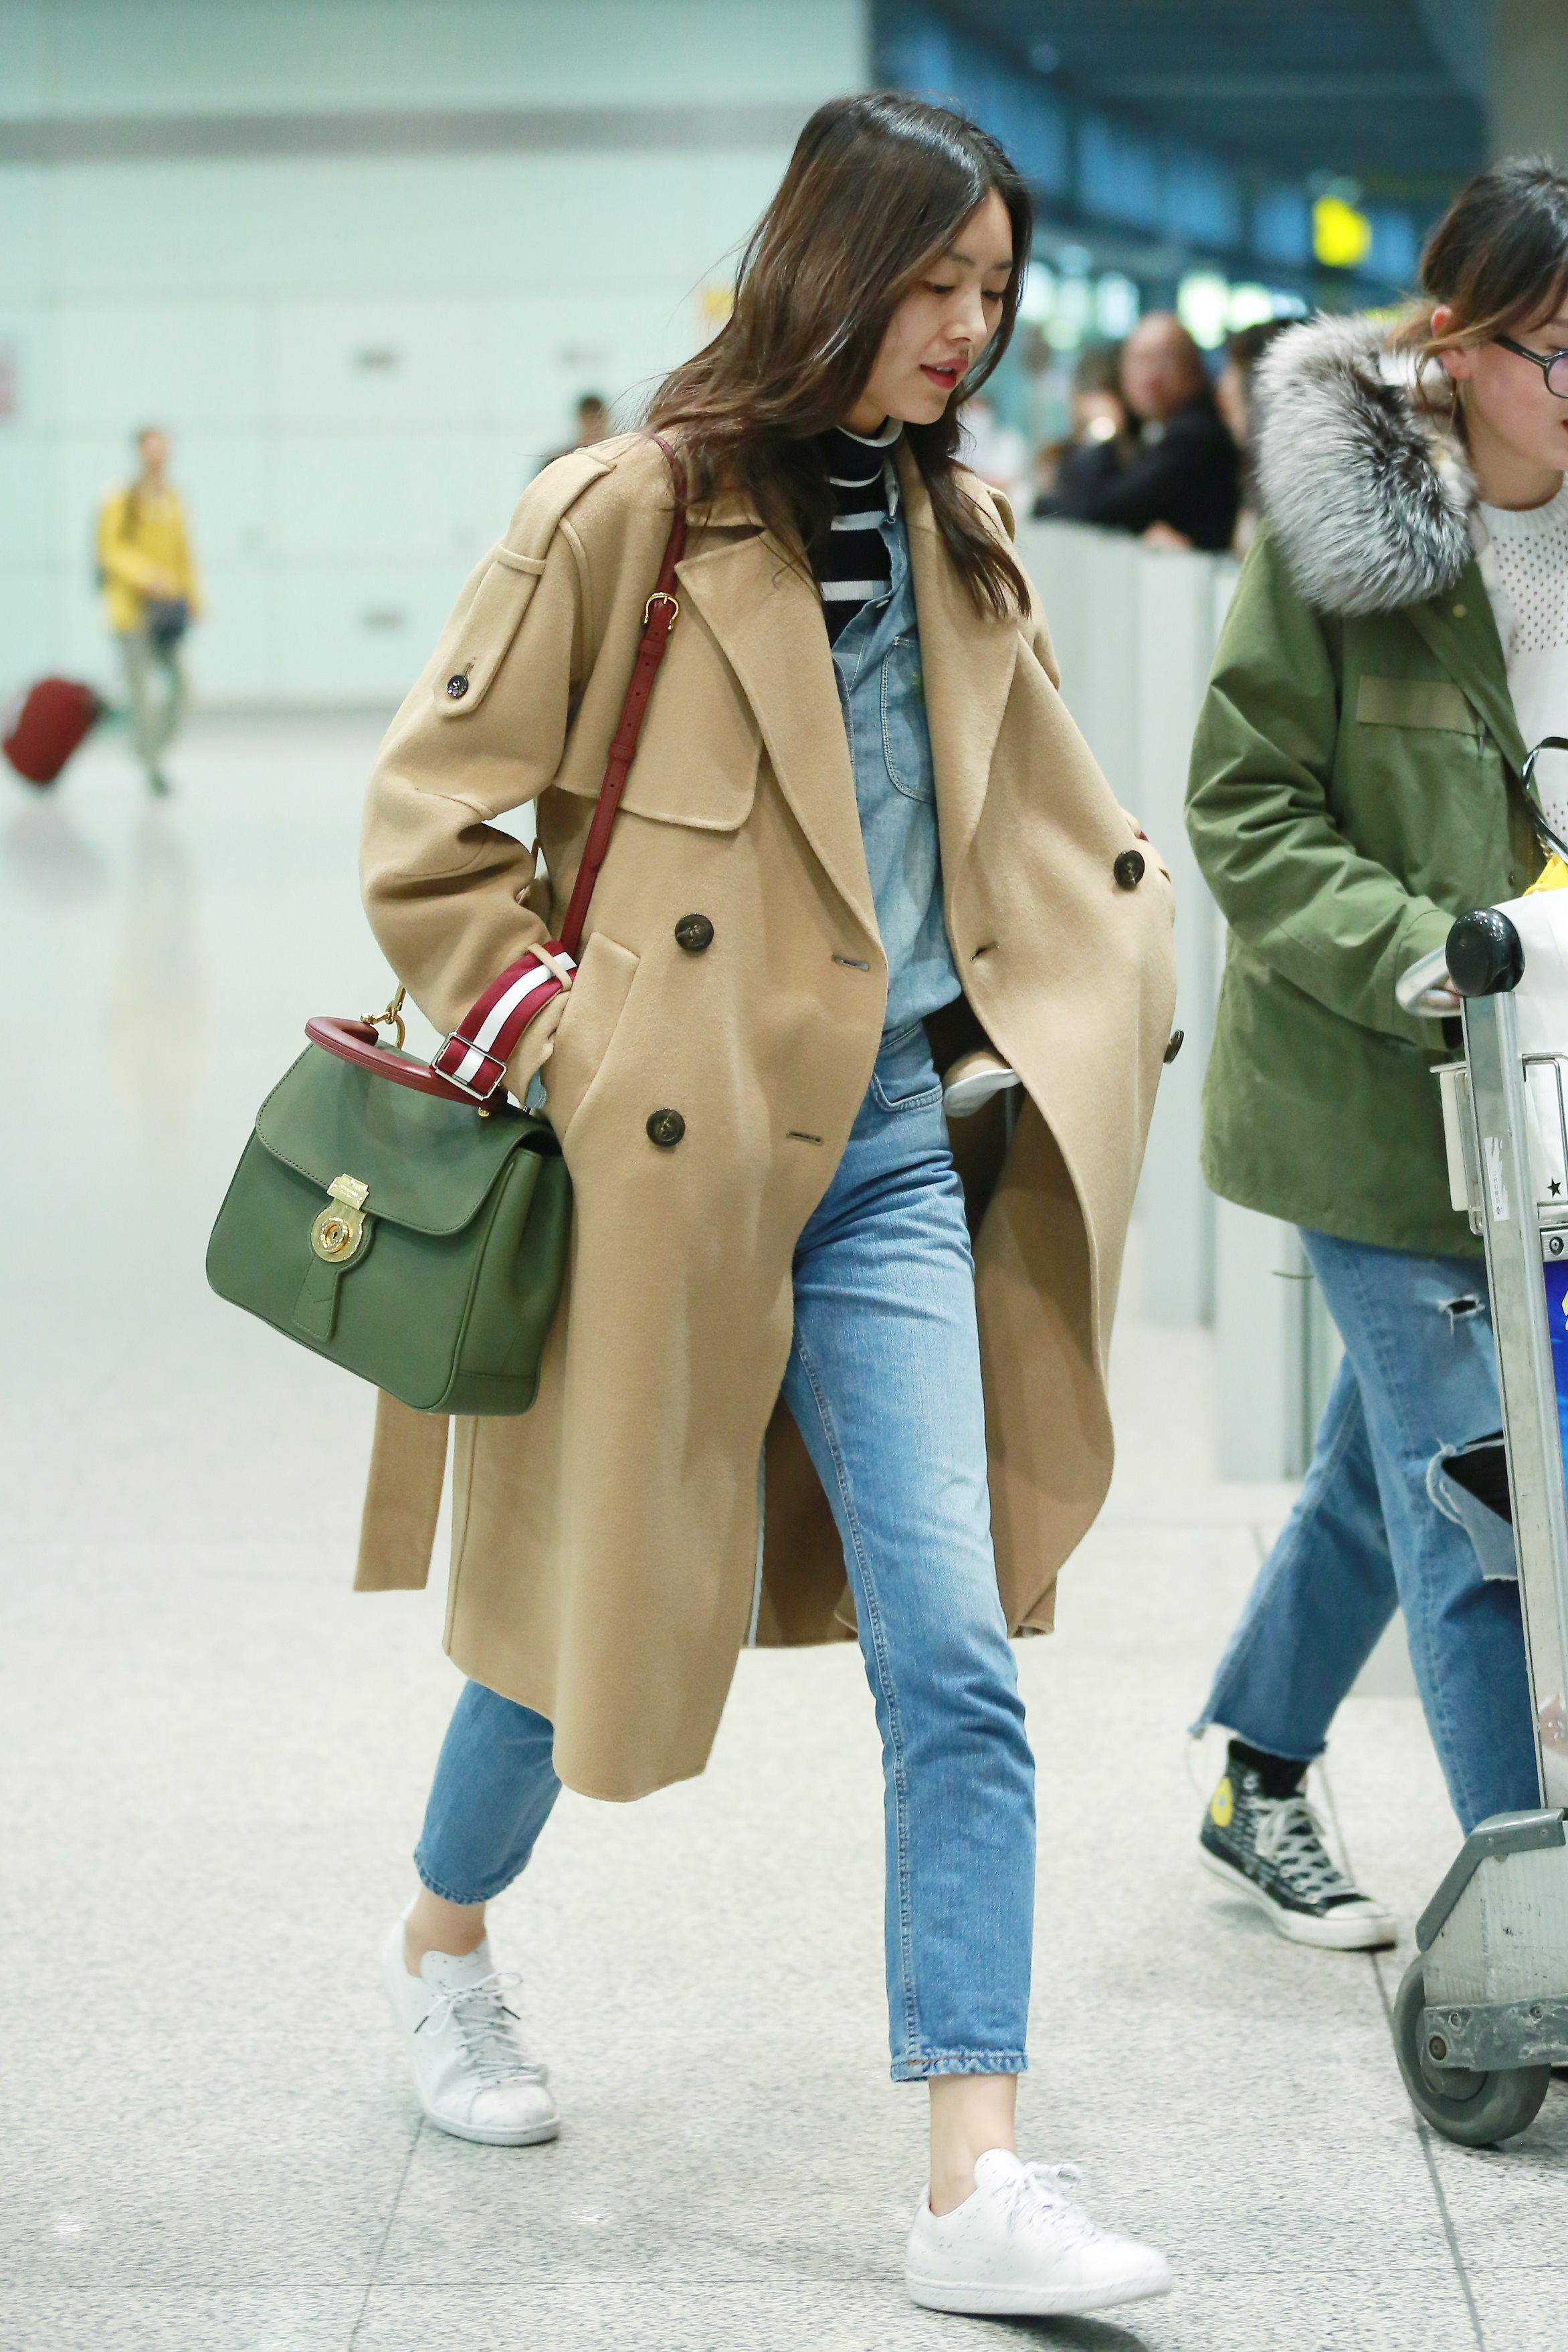 Liu Wen carrying DK88 bag at the Beijing airport